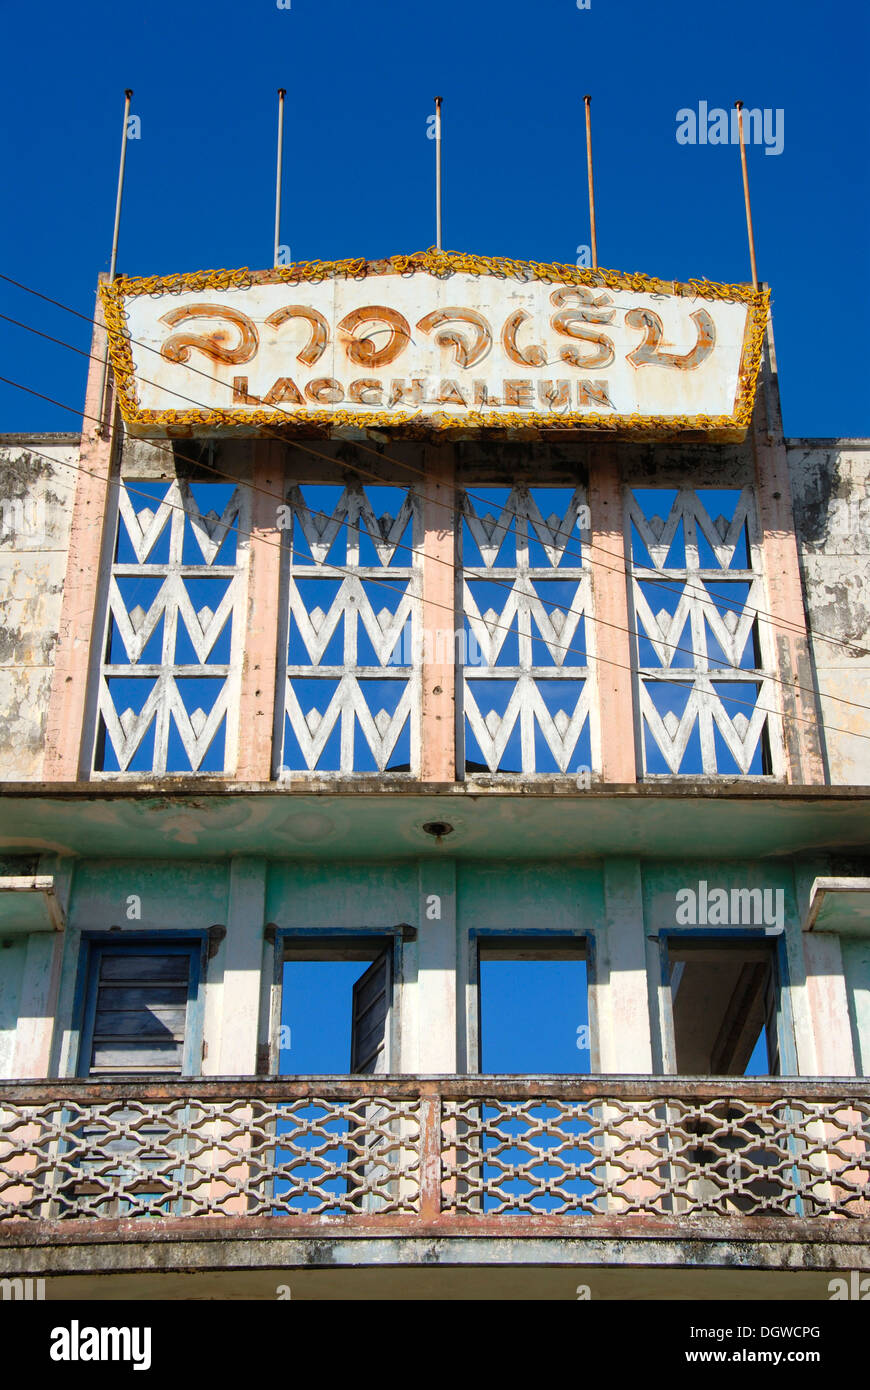 French colonial period, decay, architecture, Art Deco, old theater Lao Chaleune, Savannakhet, Laos, Southeast Asia, Asia - Stock Image